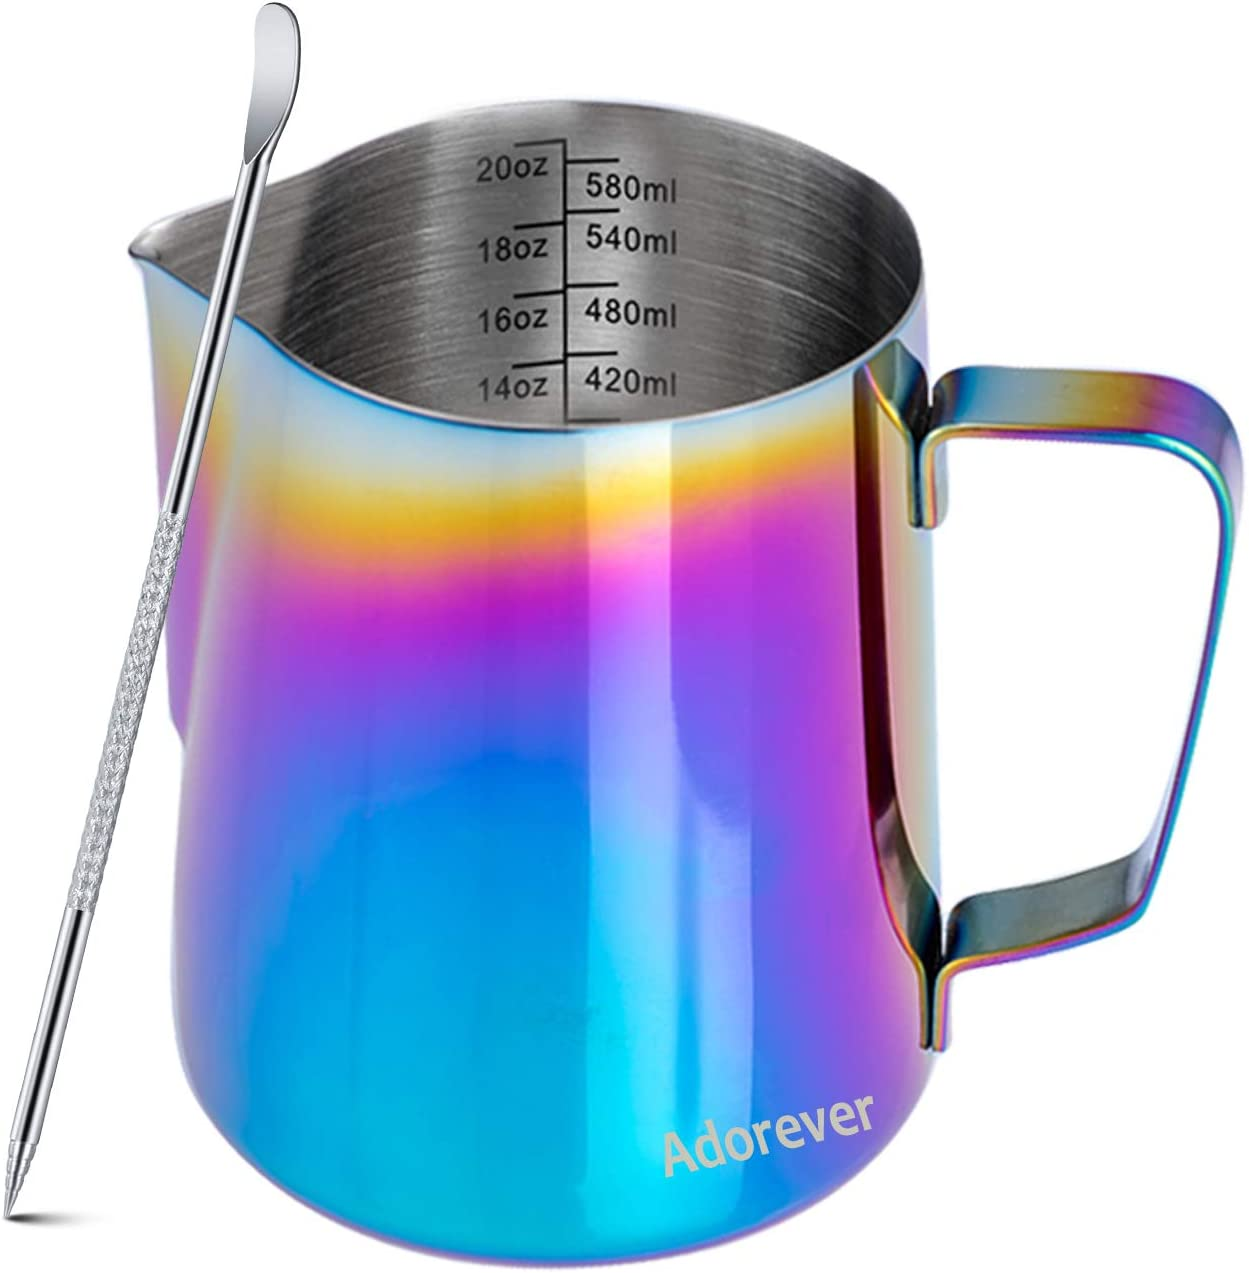 Milk Frothing Pitcher Colorful 600ml (20oz) Steaming Pitchers Stainless Steel Milk Coffee Cappuccino Latte Art Barista Steam Pitchers Milk Jug Cup with Decorating Art Pen